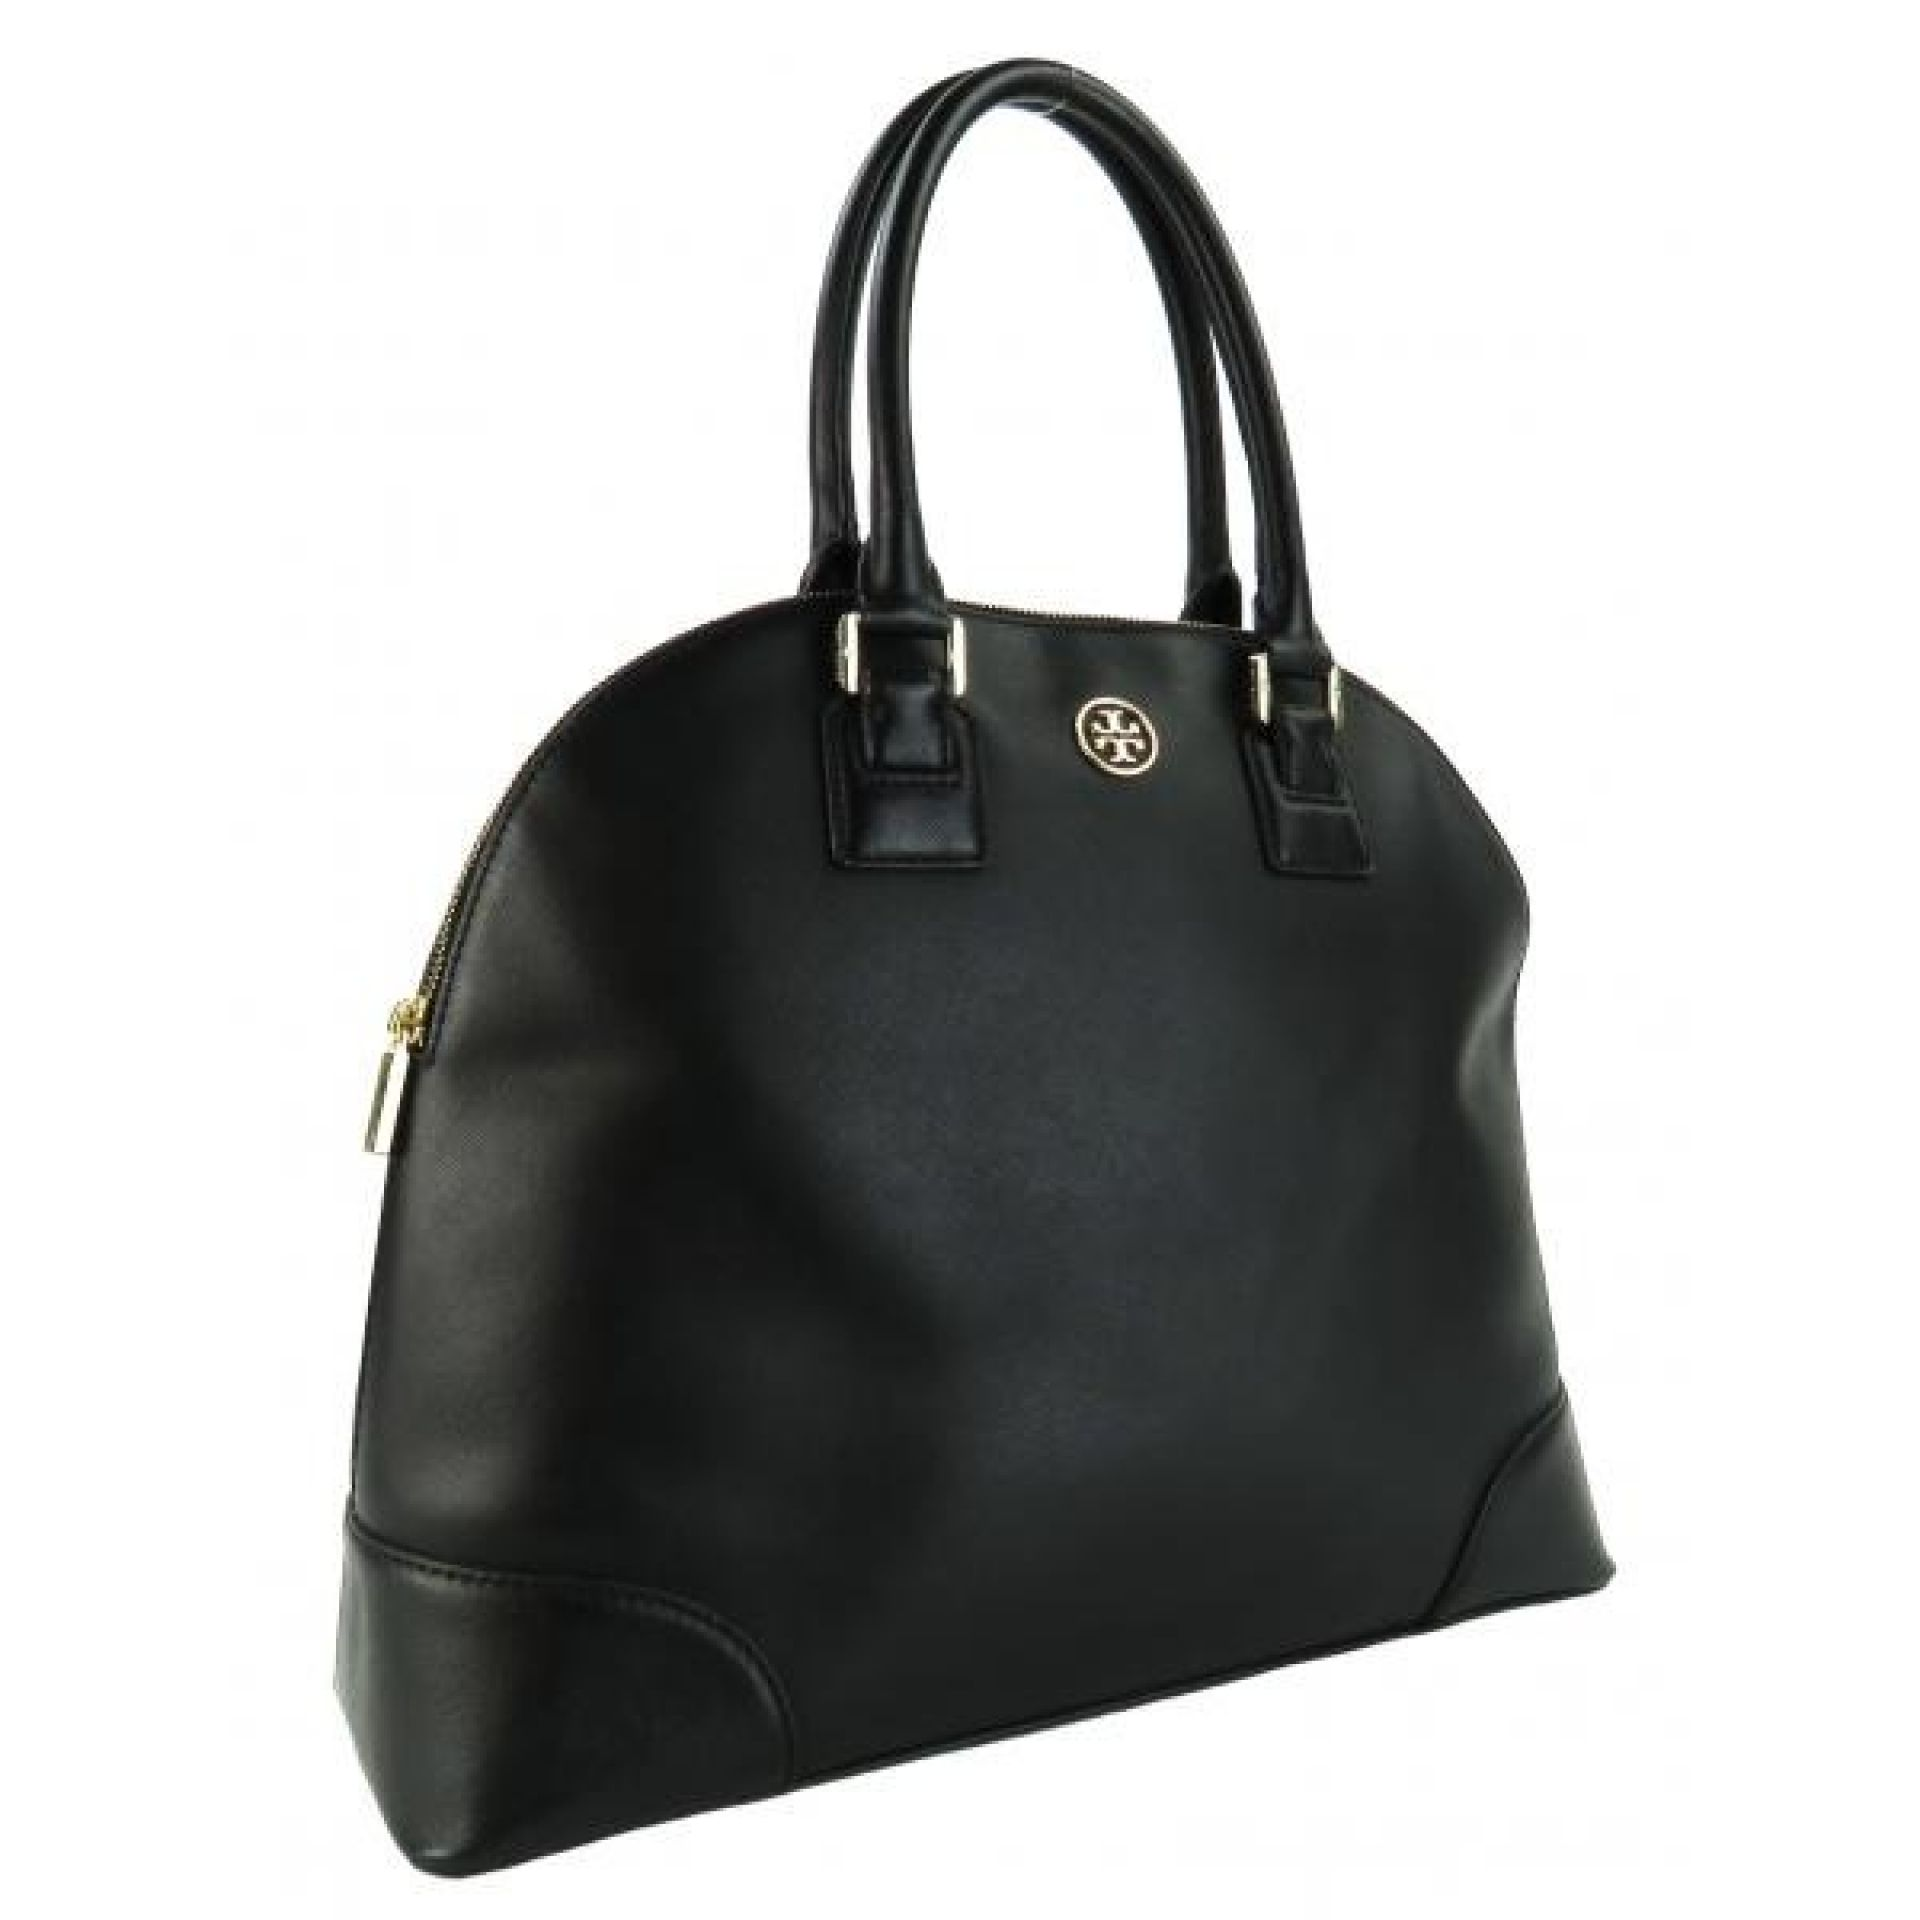 Tory Burch Black Saffiano Leather Robinson Dome Tote Bag